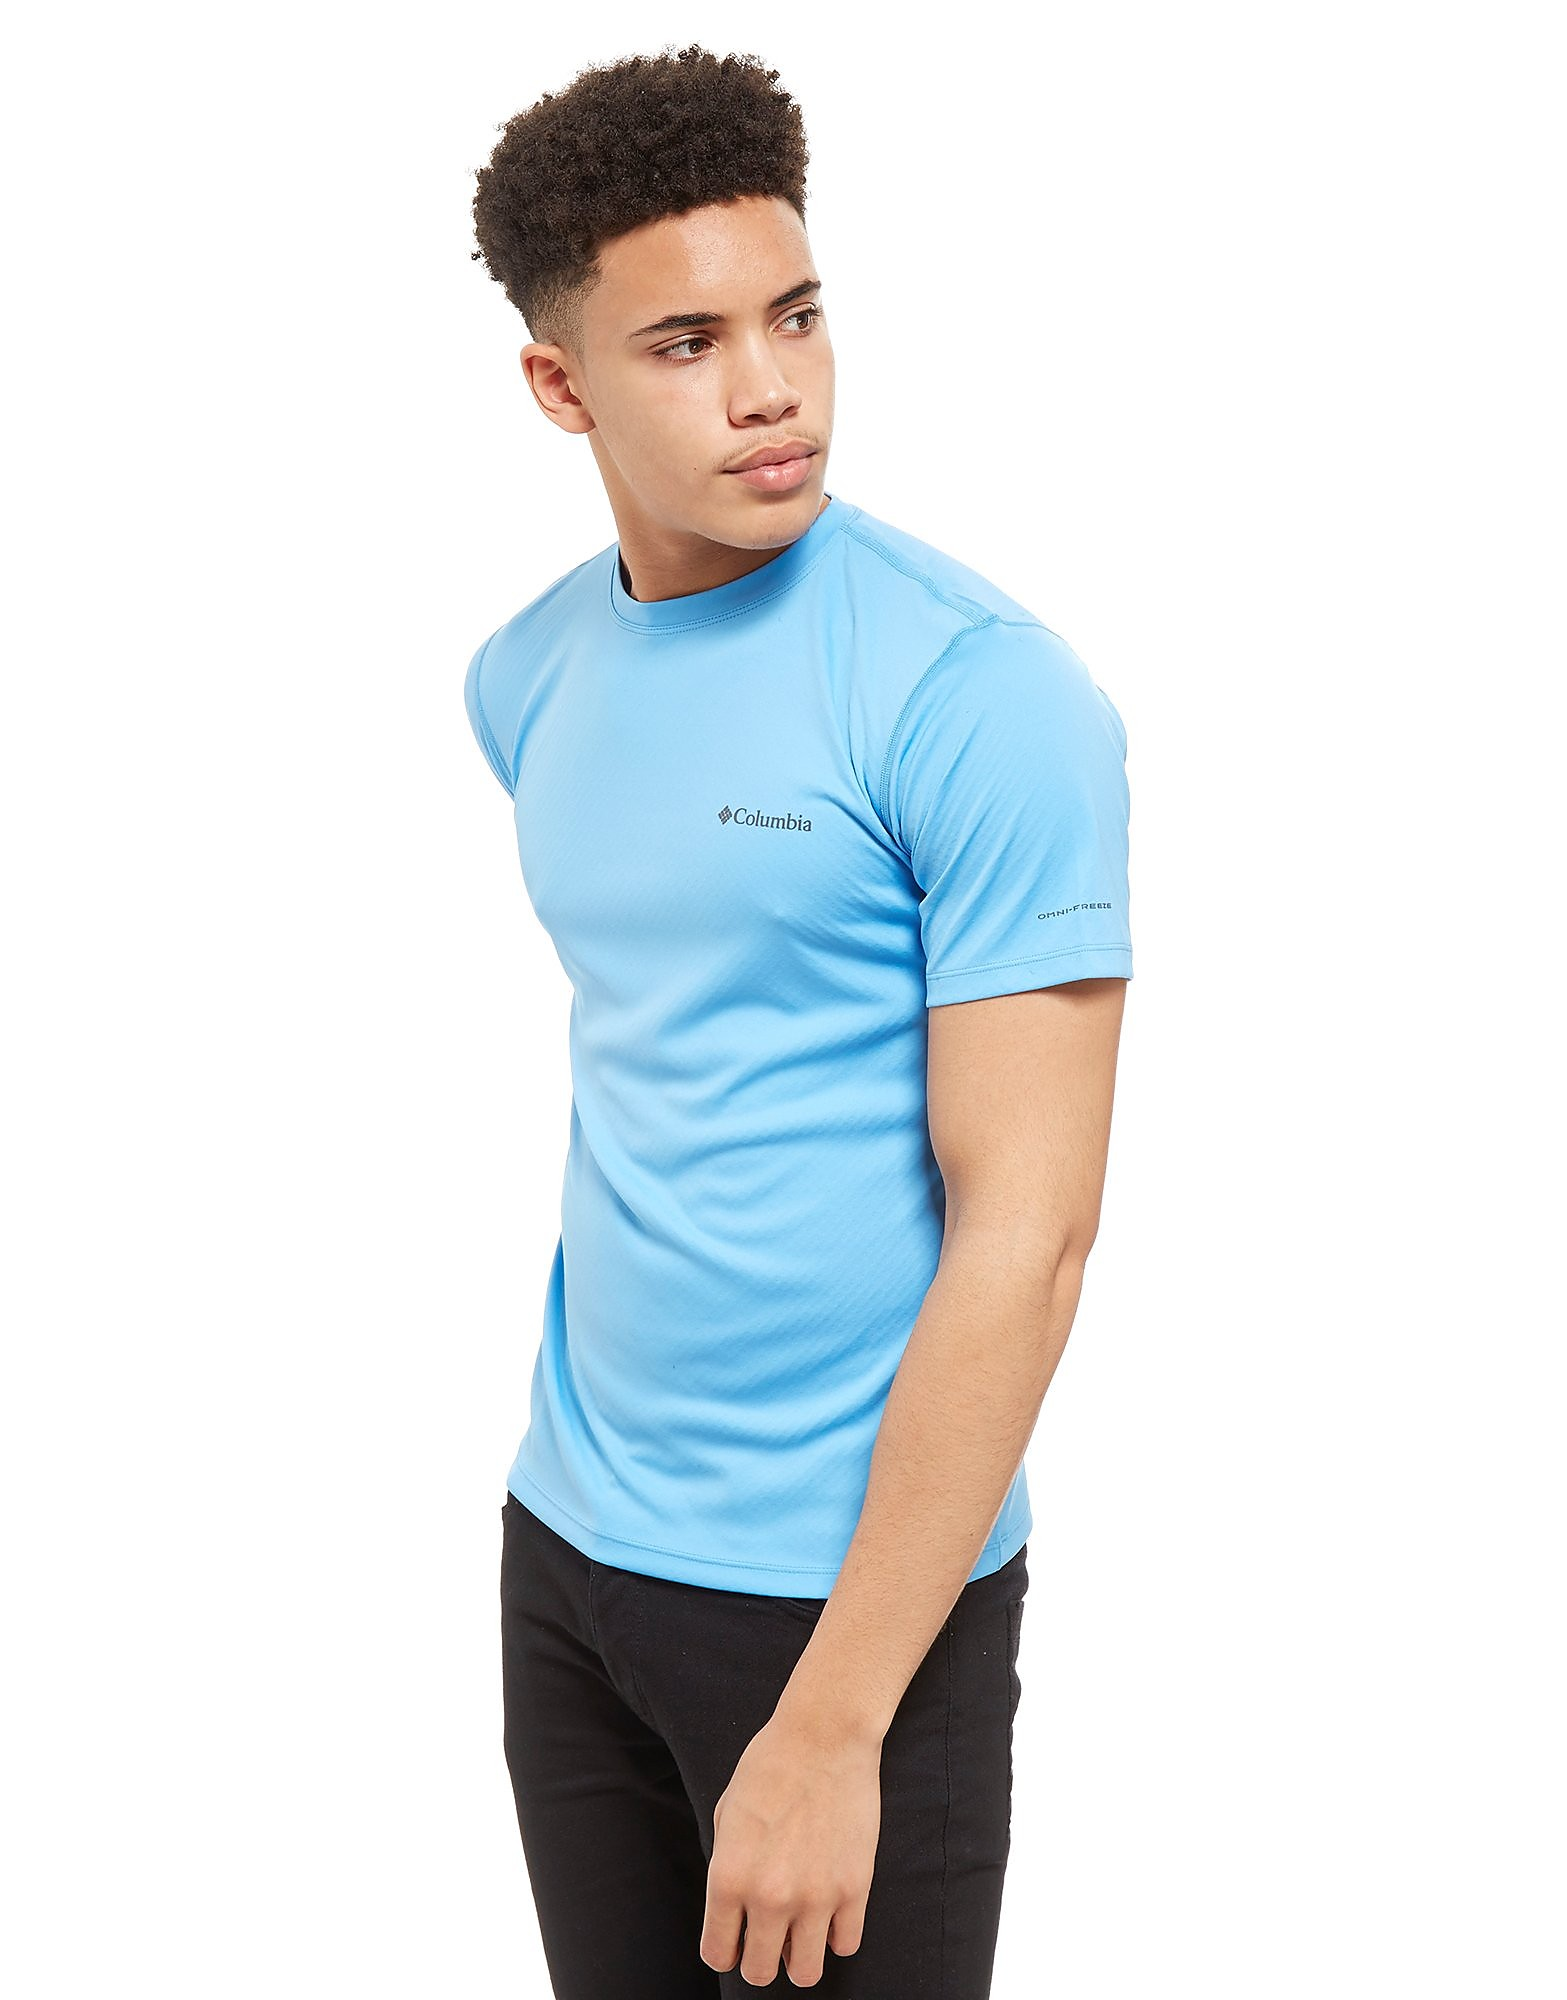 Columbia Short Sleeve Poly Tech T-Shirt